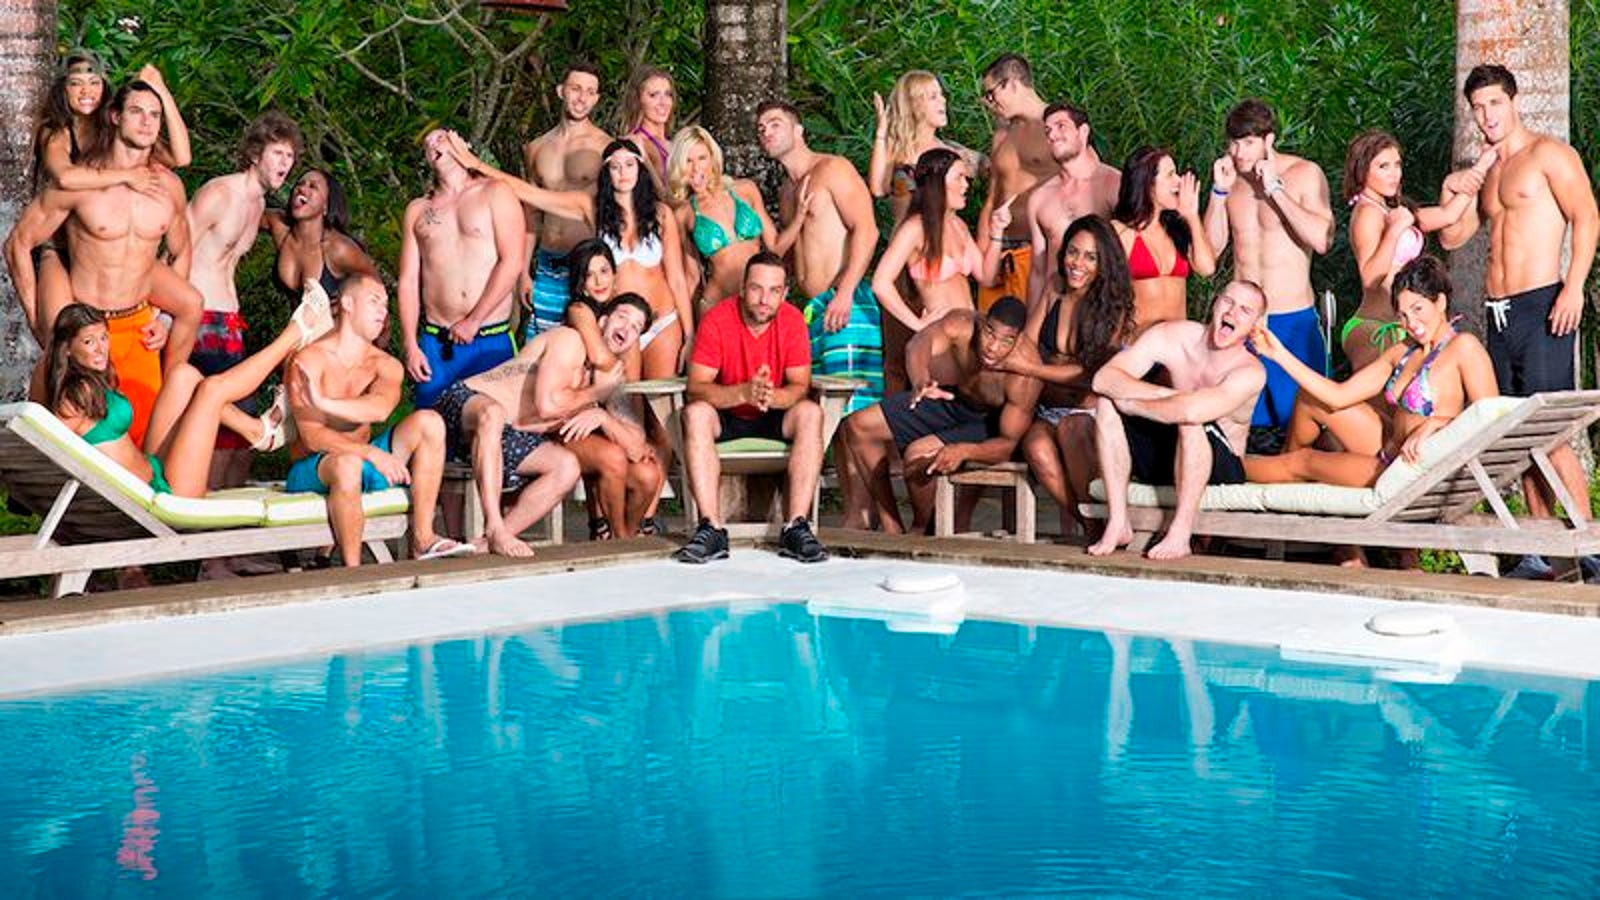 How MTV's The Challenge became one of TV's most riveting